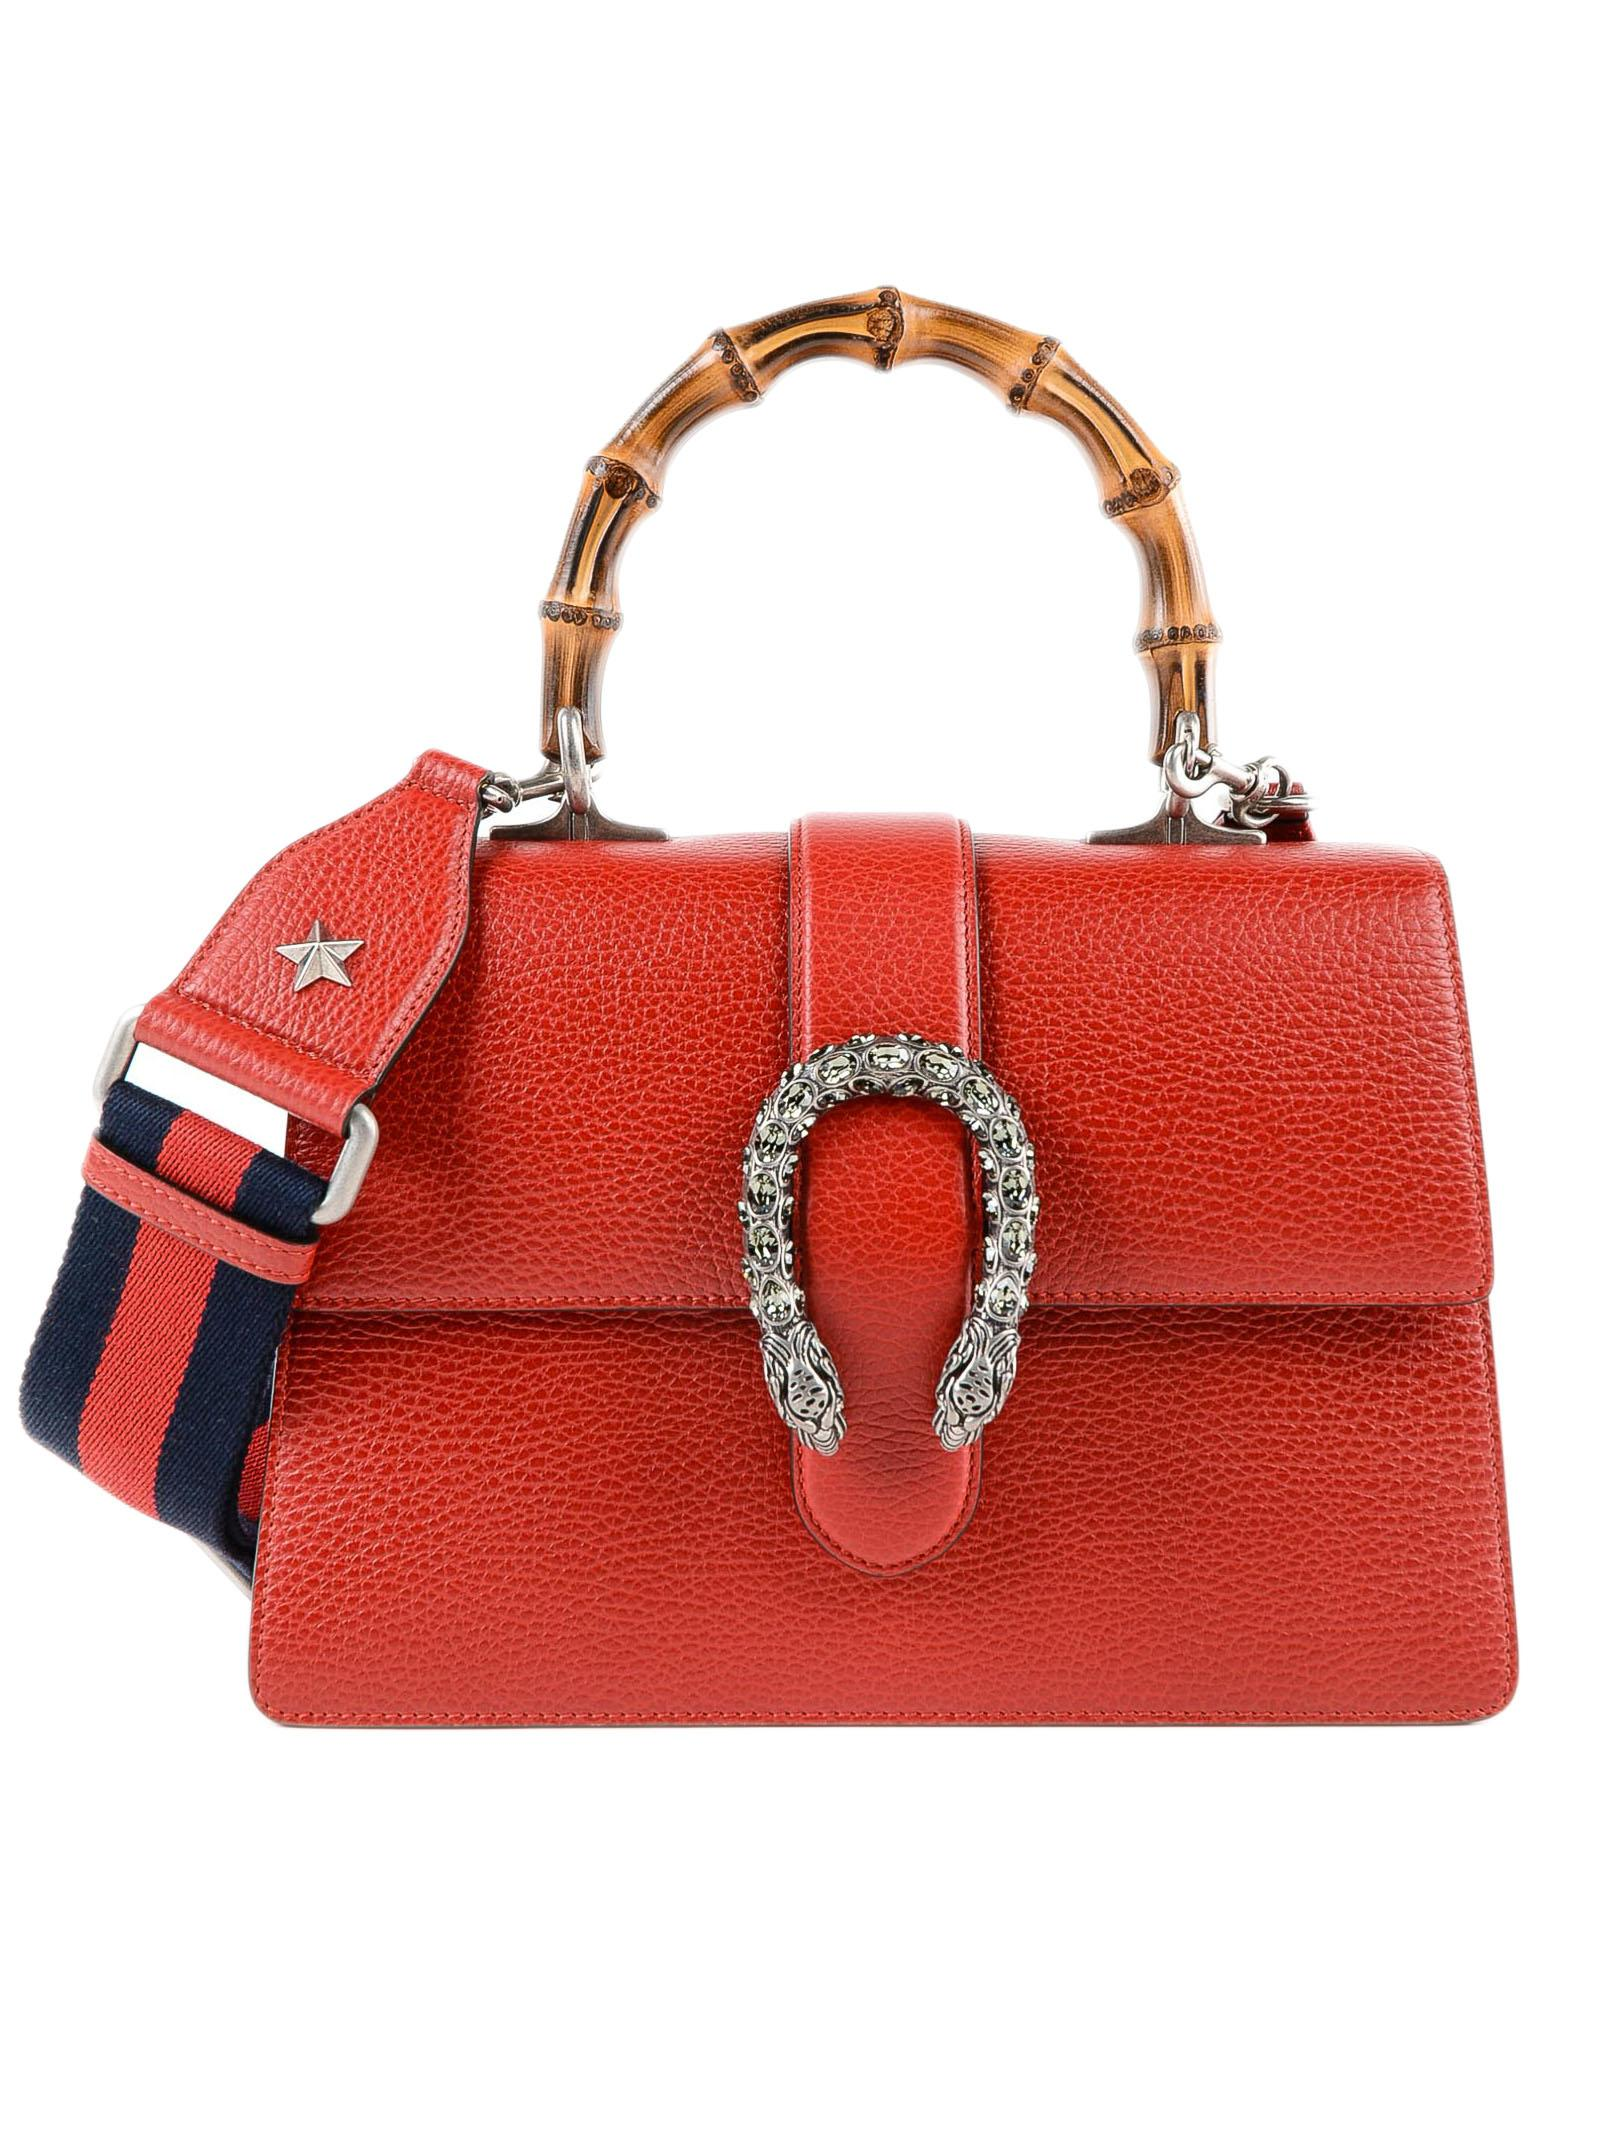 49a6c0758f5 Gucci W Dionysus Bag in Red - Lyst